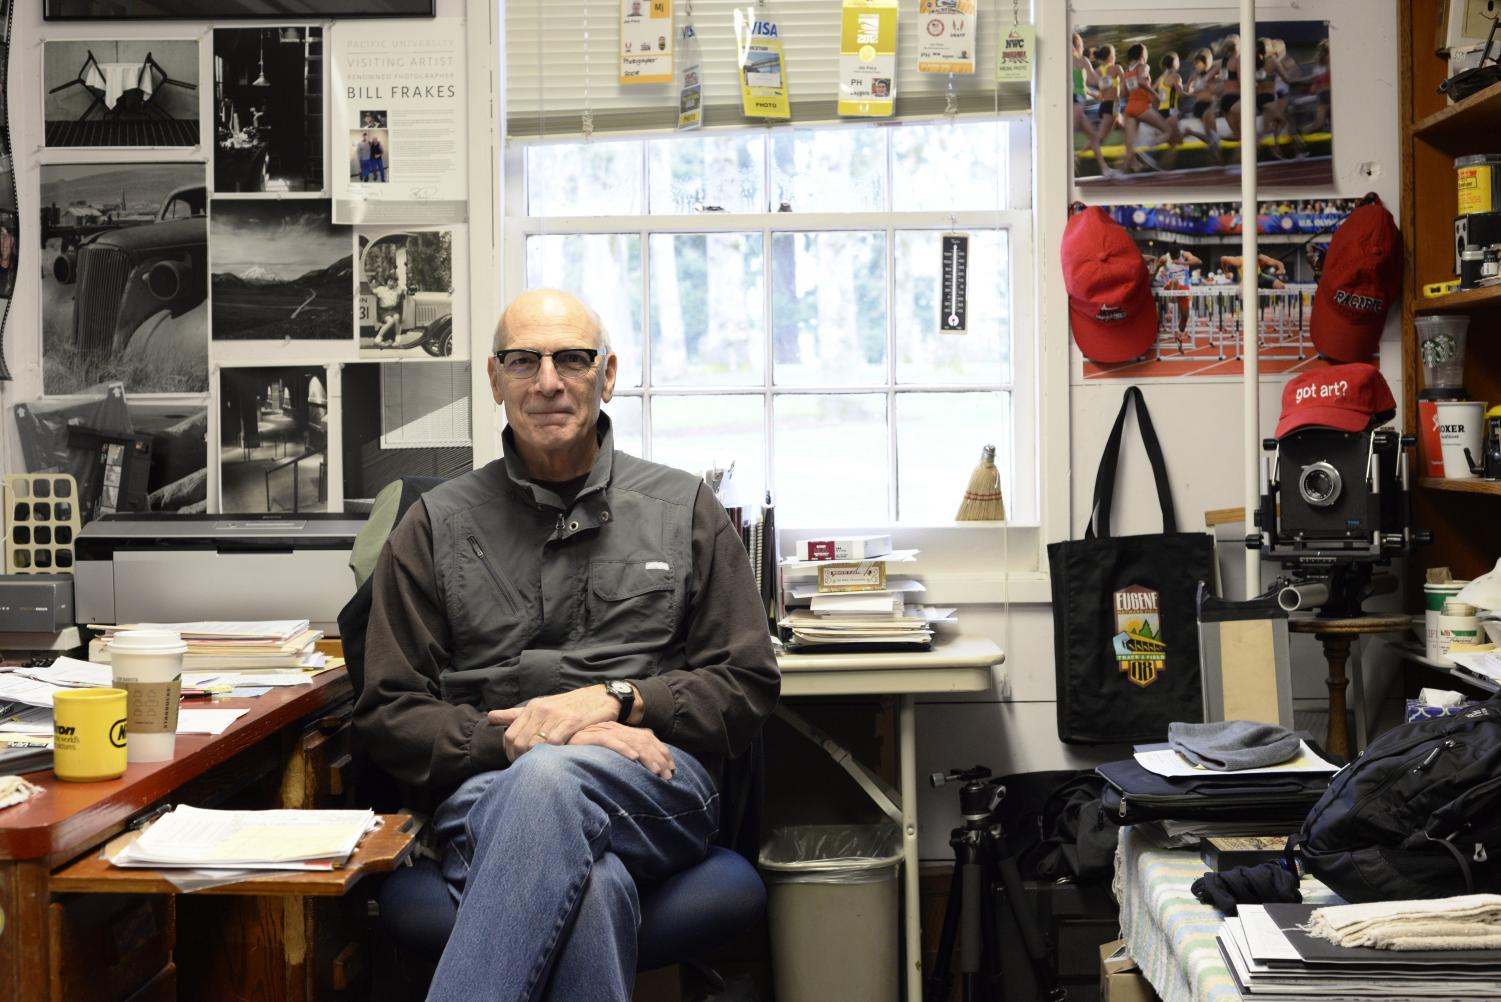 Assistant professor of art and photography Jim Flory will retire from full-time work at Pacific University after the 2017-18 school year.